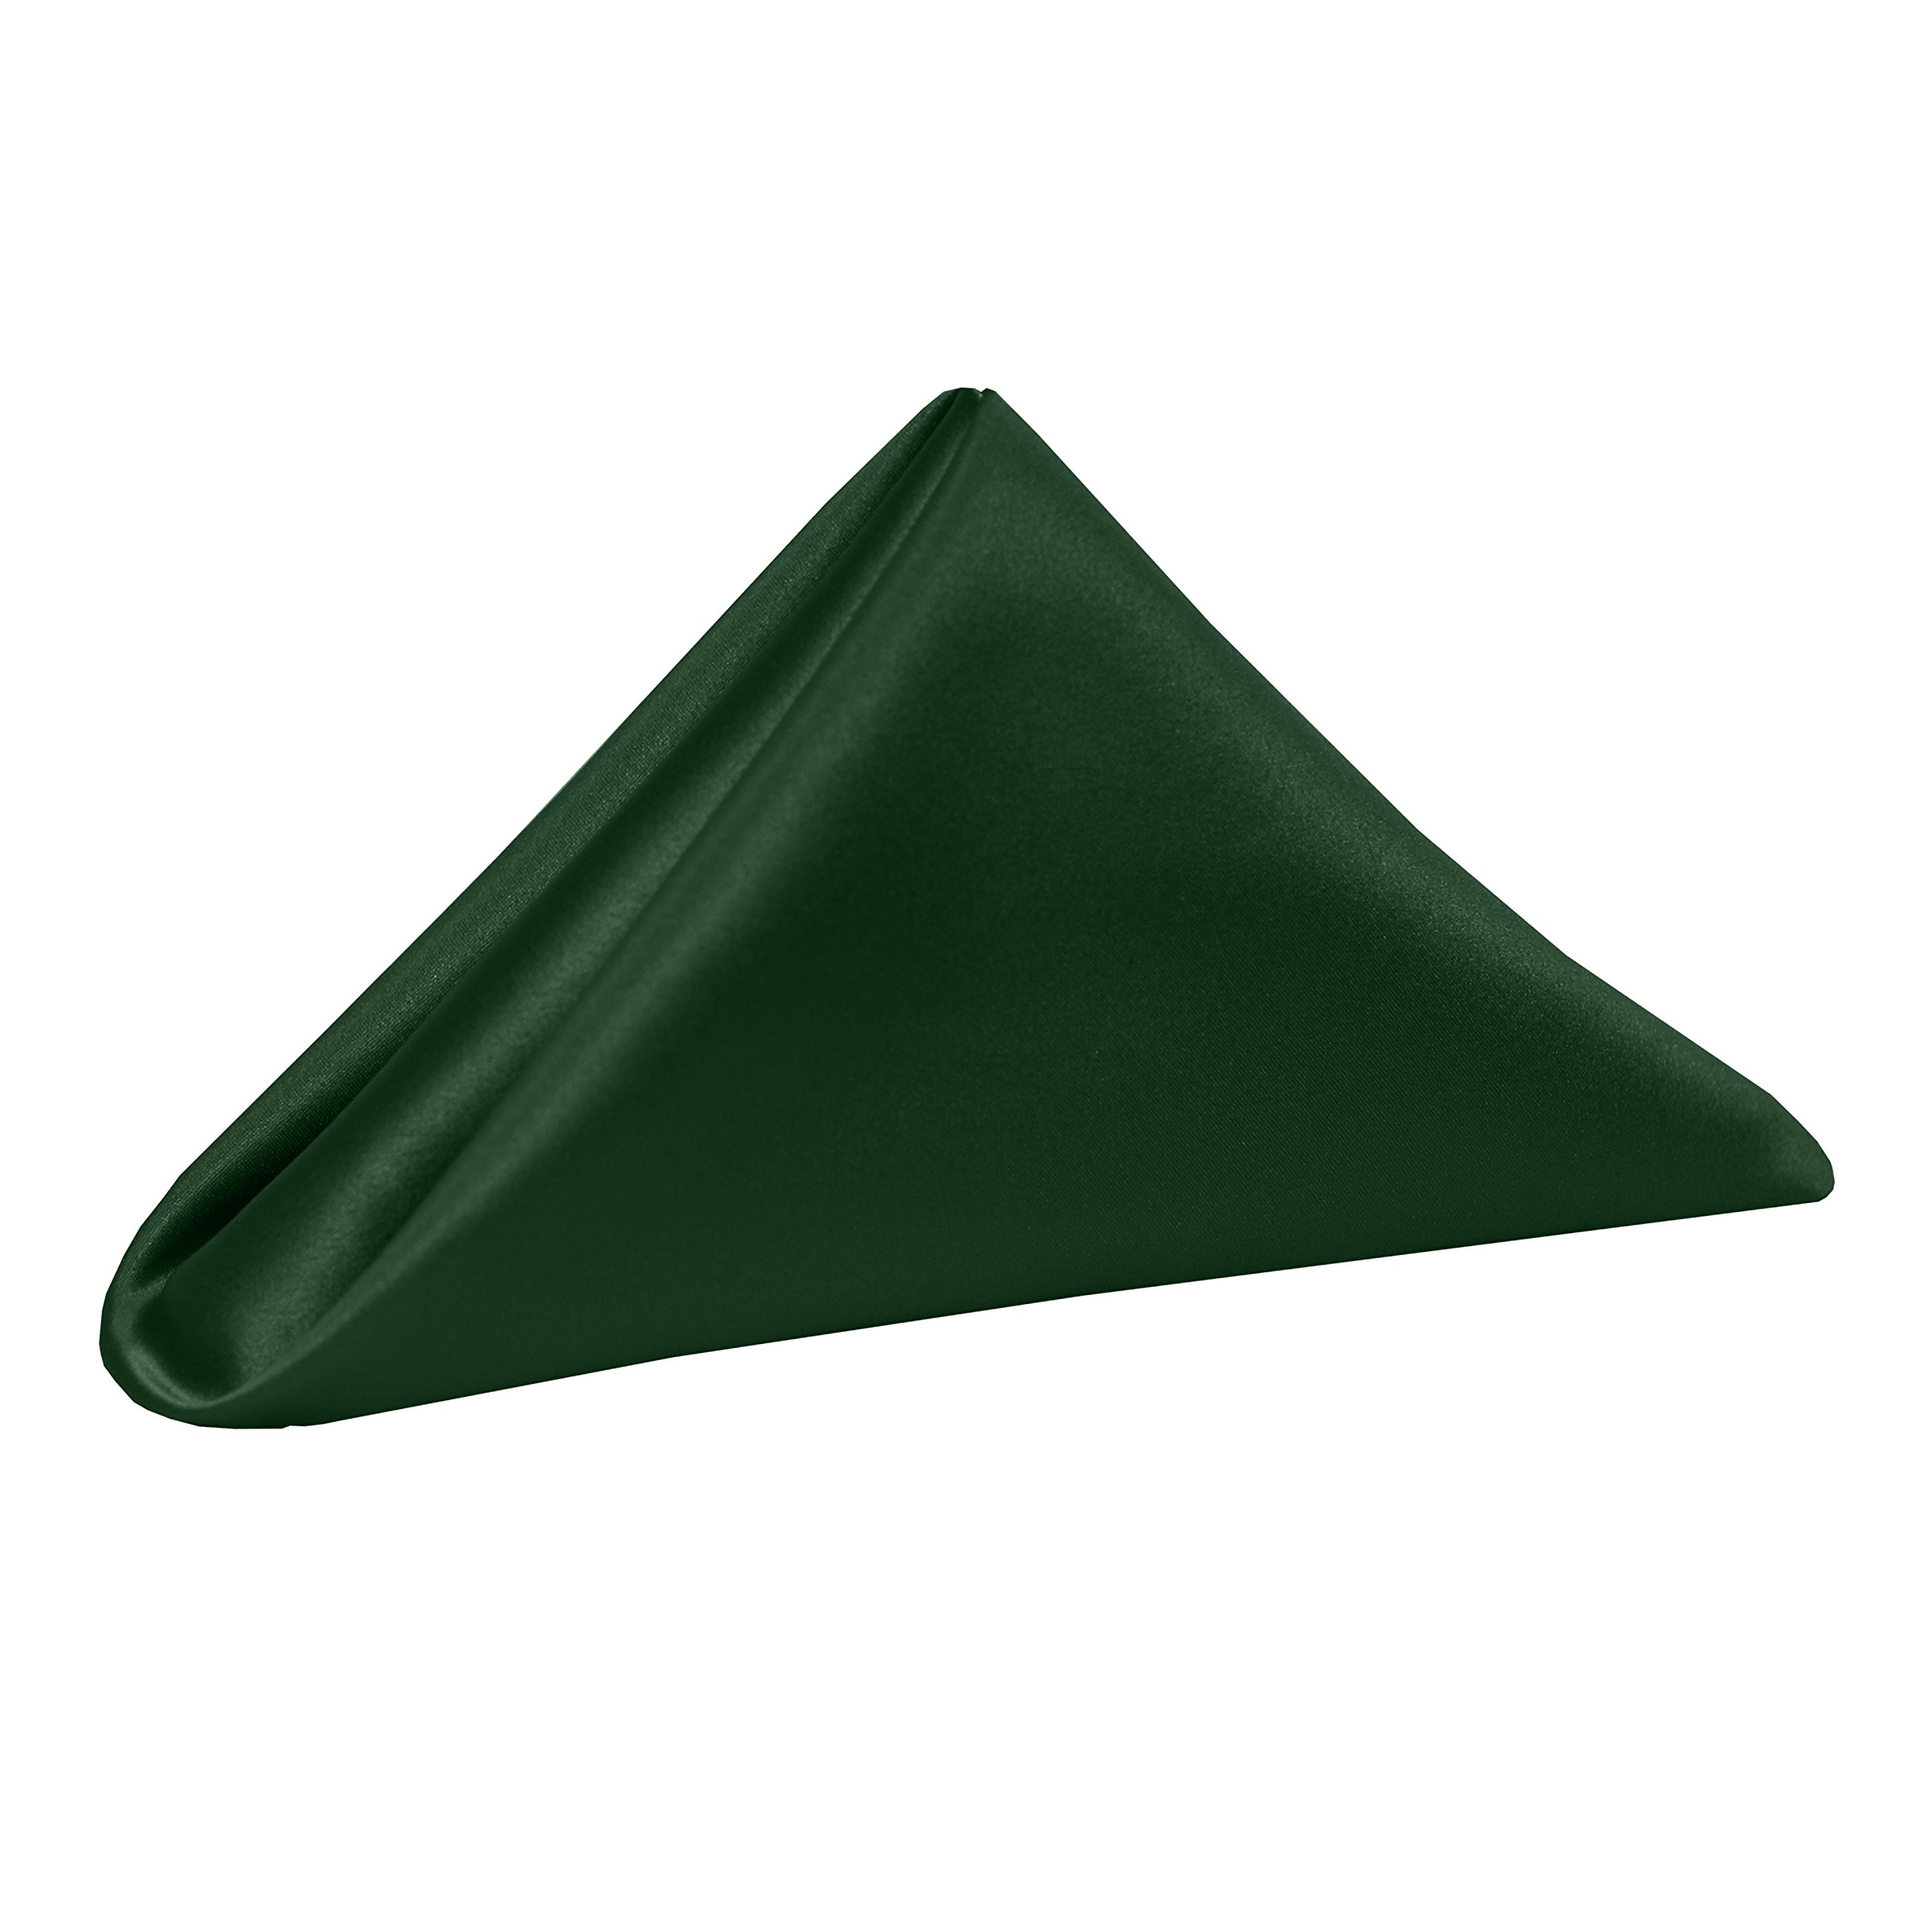 Ultimate Textile (46 Dozen) Satin 20 x 20-Inch Dinner Napkins - for Wedding, Special Event or Banquet use, Hunter Green